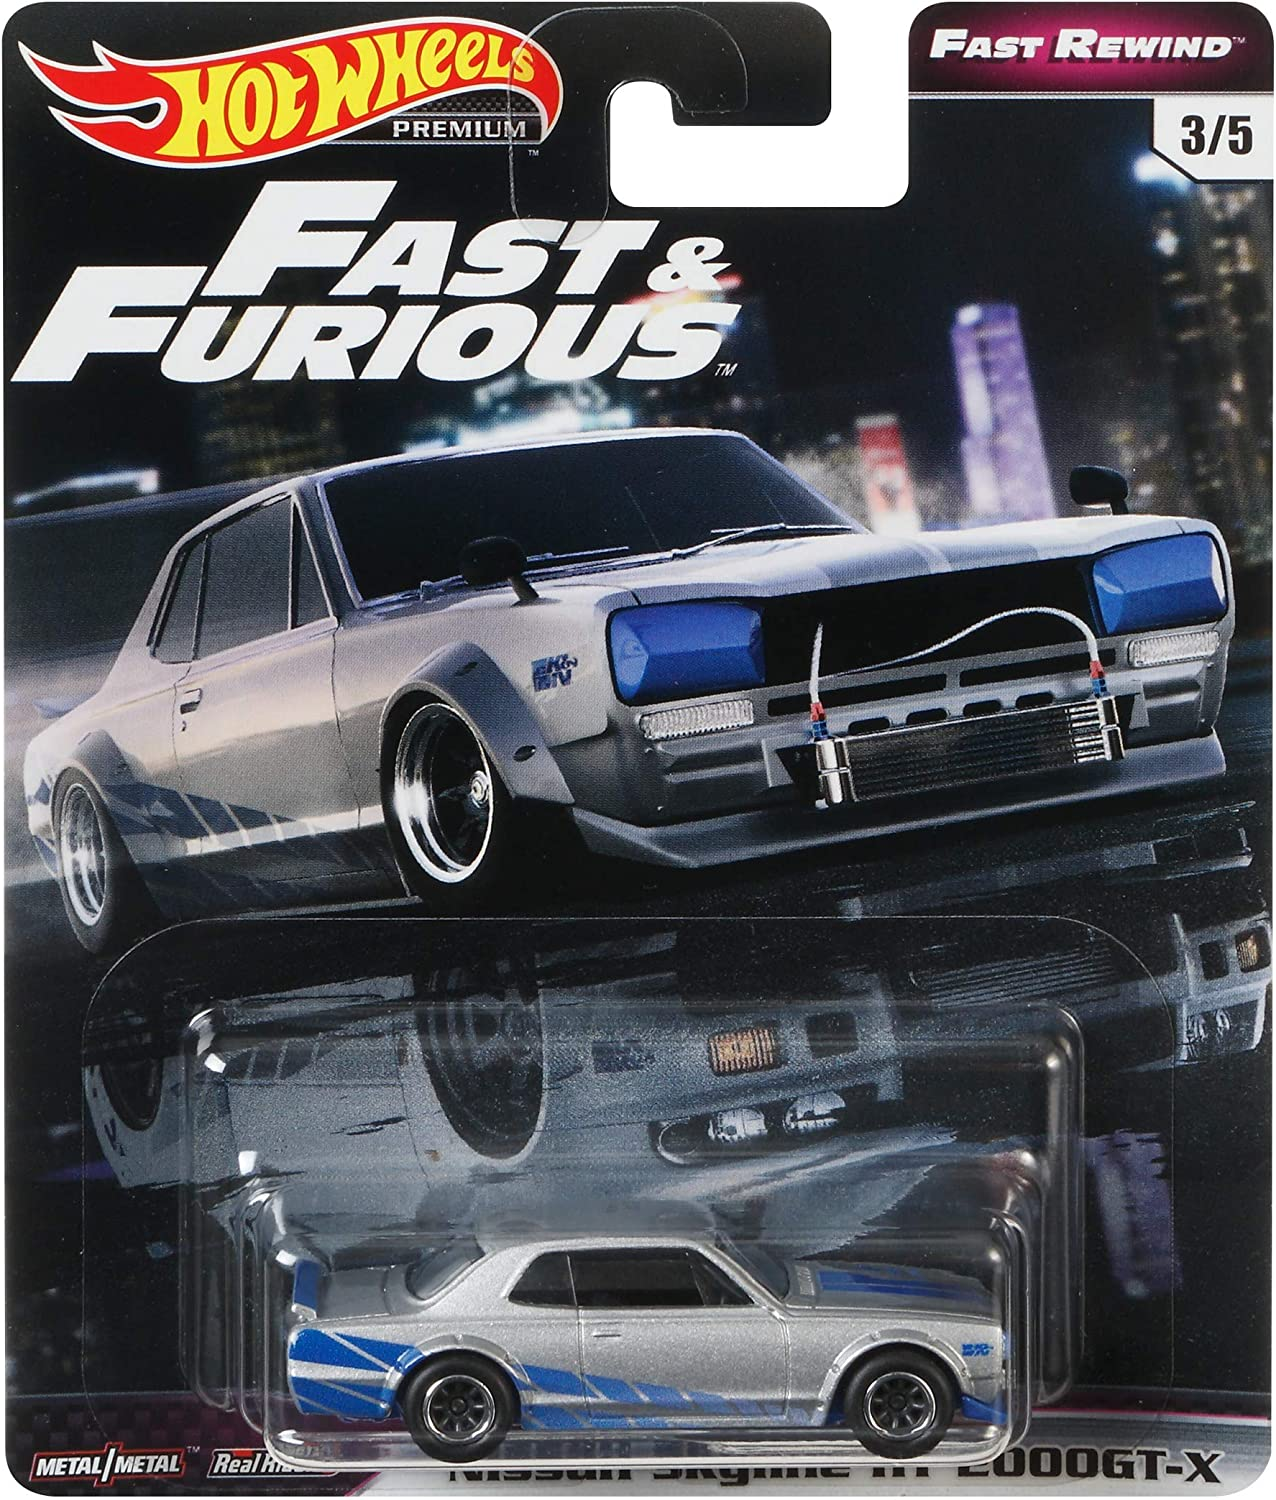 Hot Wheels Nissan Skyline R33 Vehicle